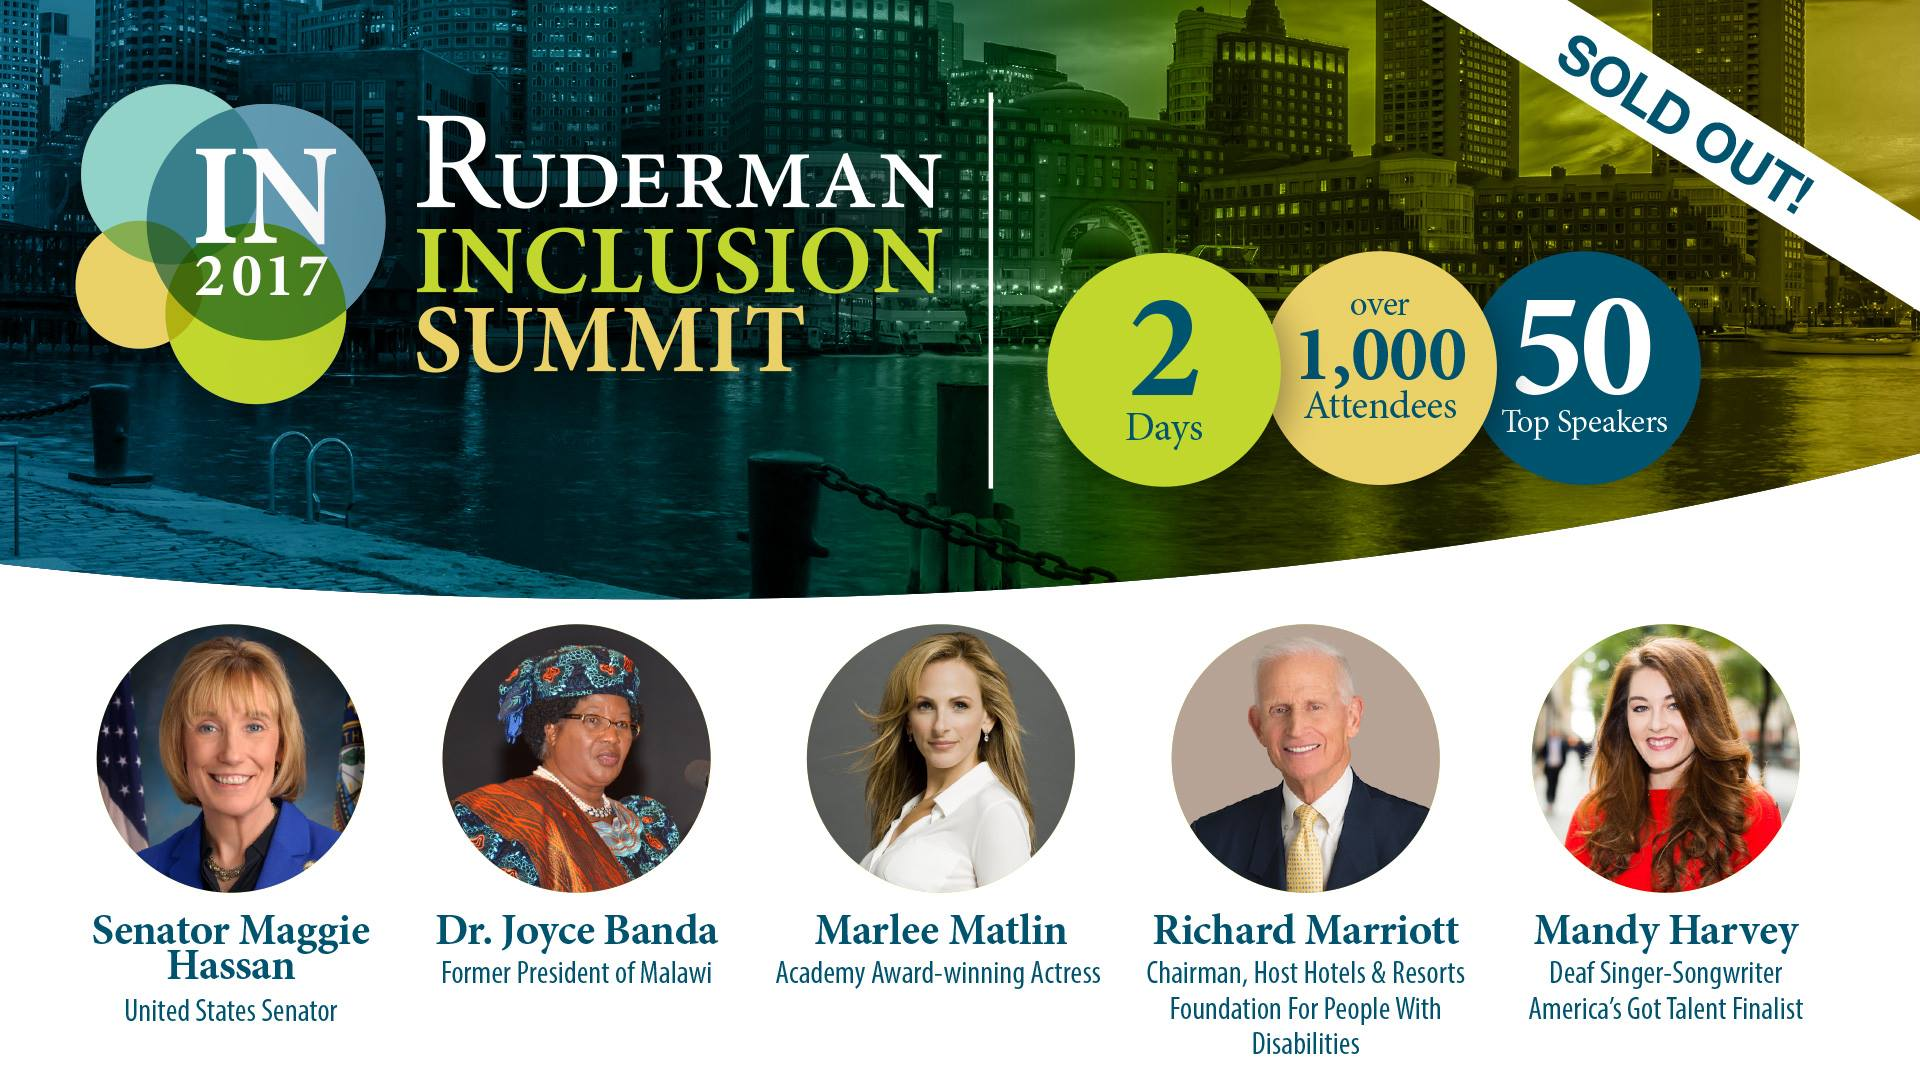 5 Things not to Miss at the 2017 Ruderman Inclusion Summit